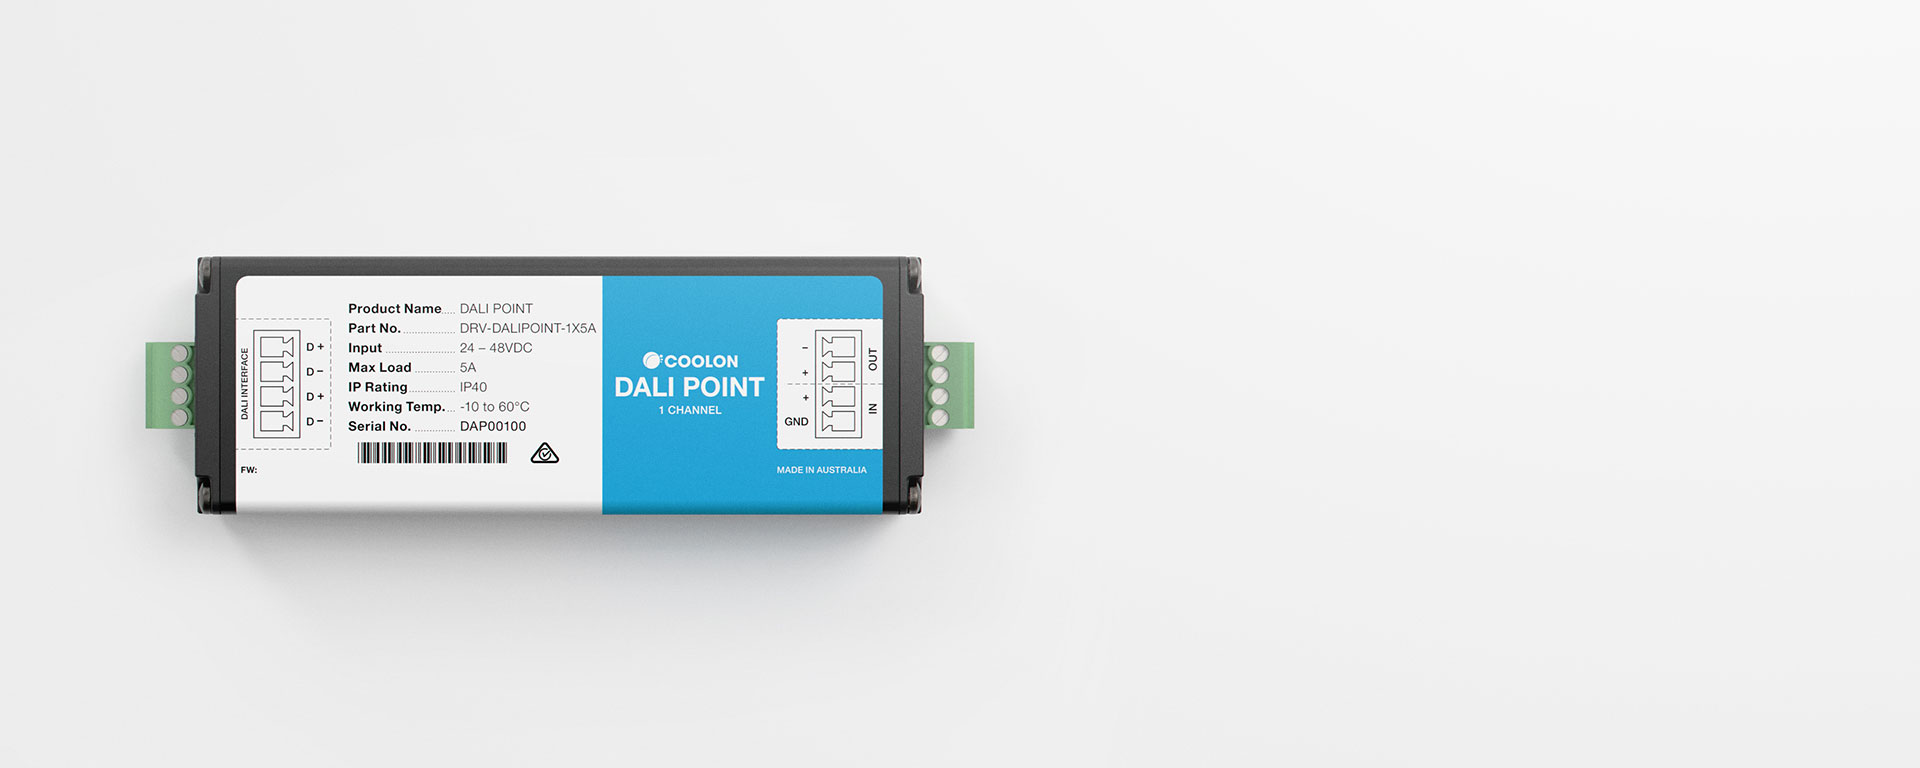 The DALI Point driver is designed to suit most indoor DALI LED applications. A compact design allows it to be installed in the smallest of spaces.